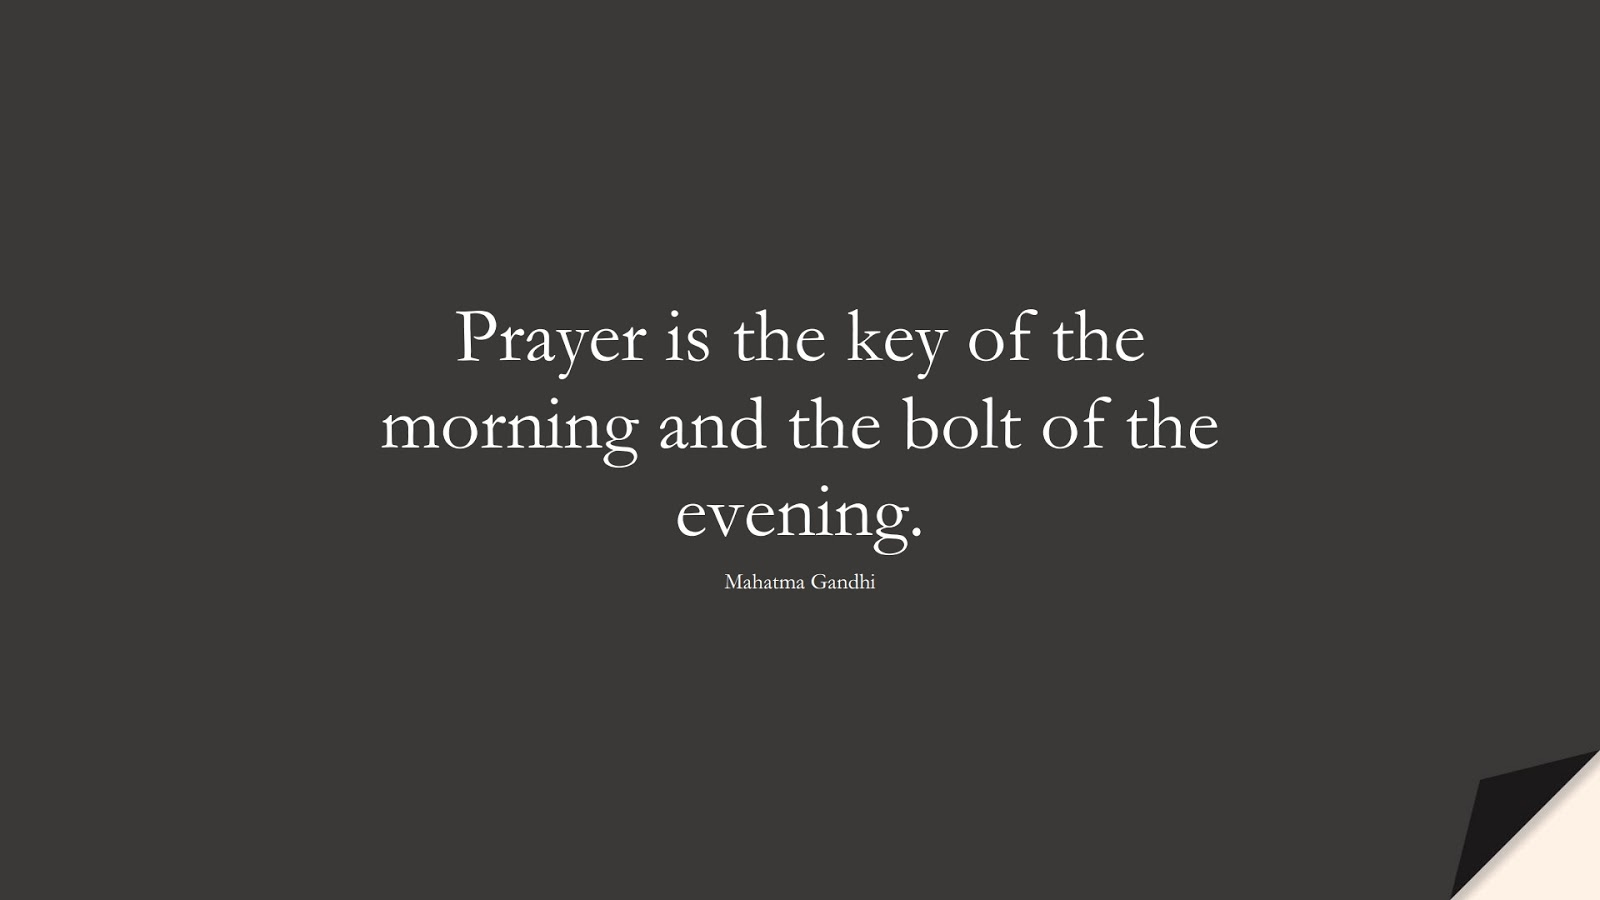 Prayer is the key of the morning and the bolt of the evening. (Mahatma Gandhi);  #HopeQuotes